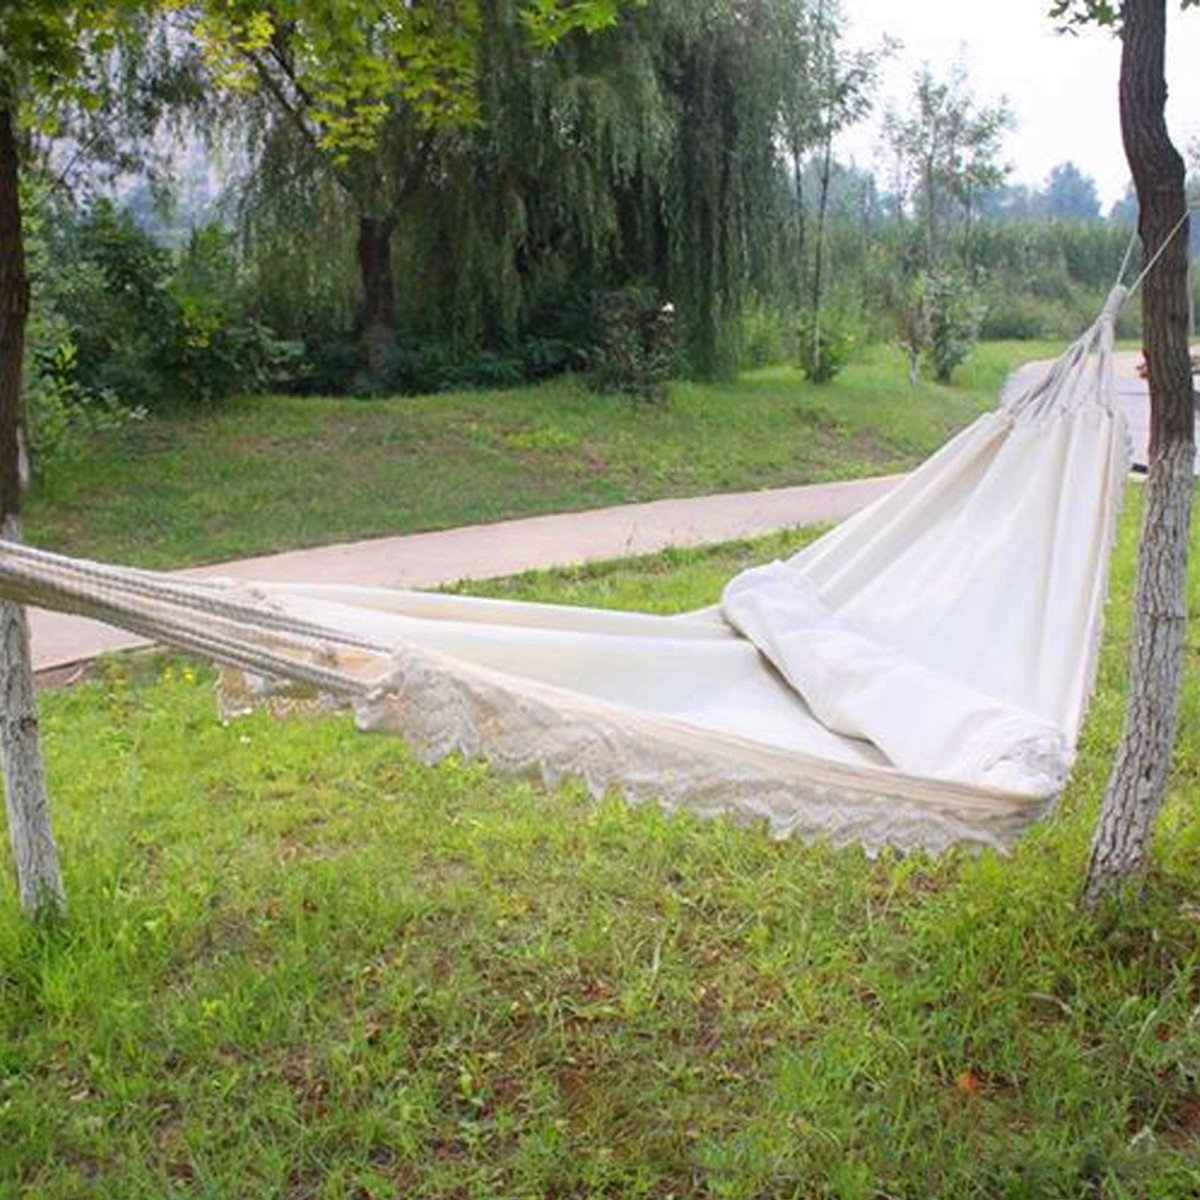 Image 4 - Outdoor Camping Hammock Swing Portable Hanging Chair Pure White Romantic Lace For Travel Hiking Garden Sleeping Swing Portable-in Hammocks from Furniture